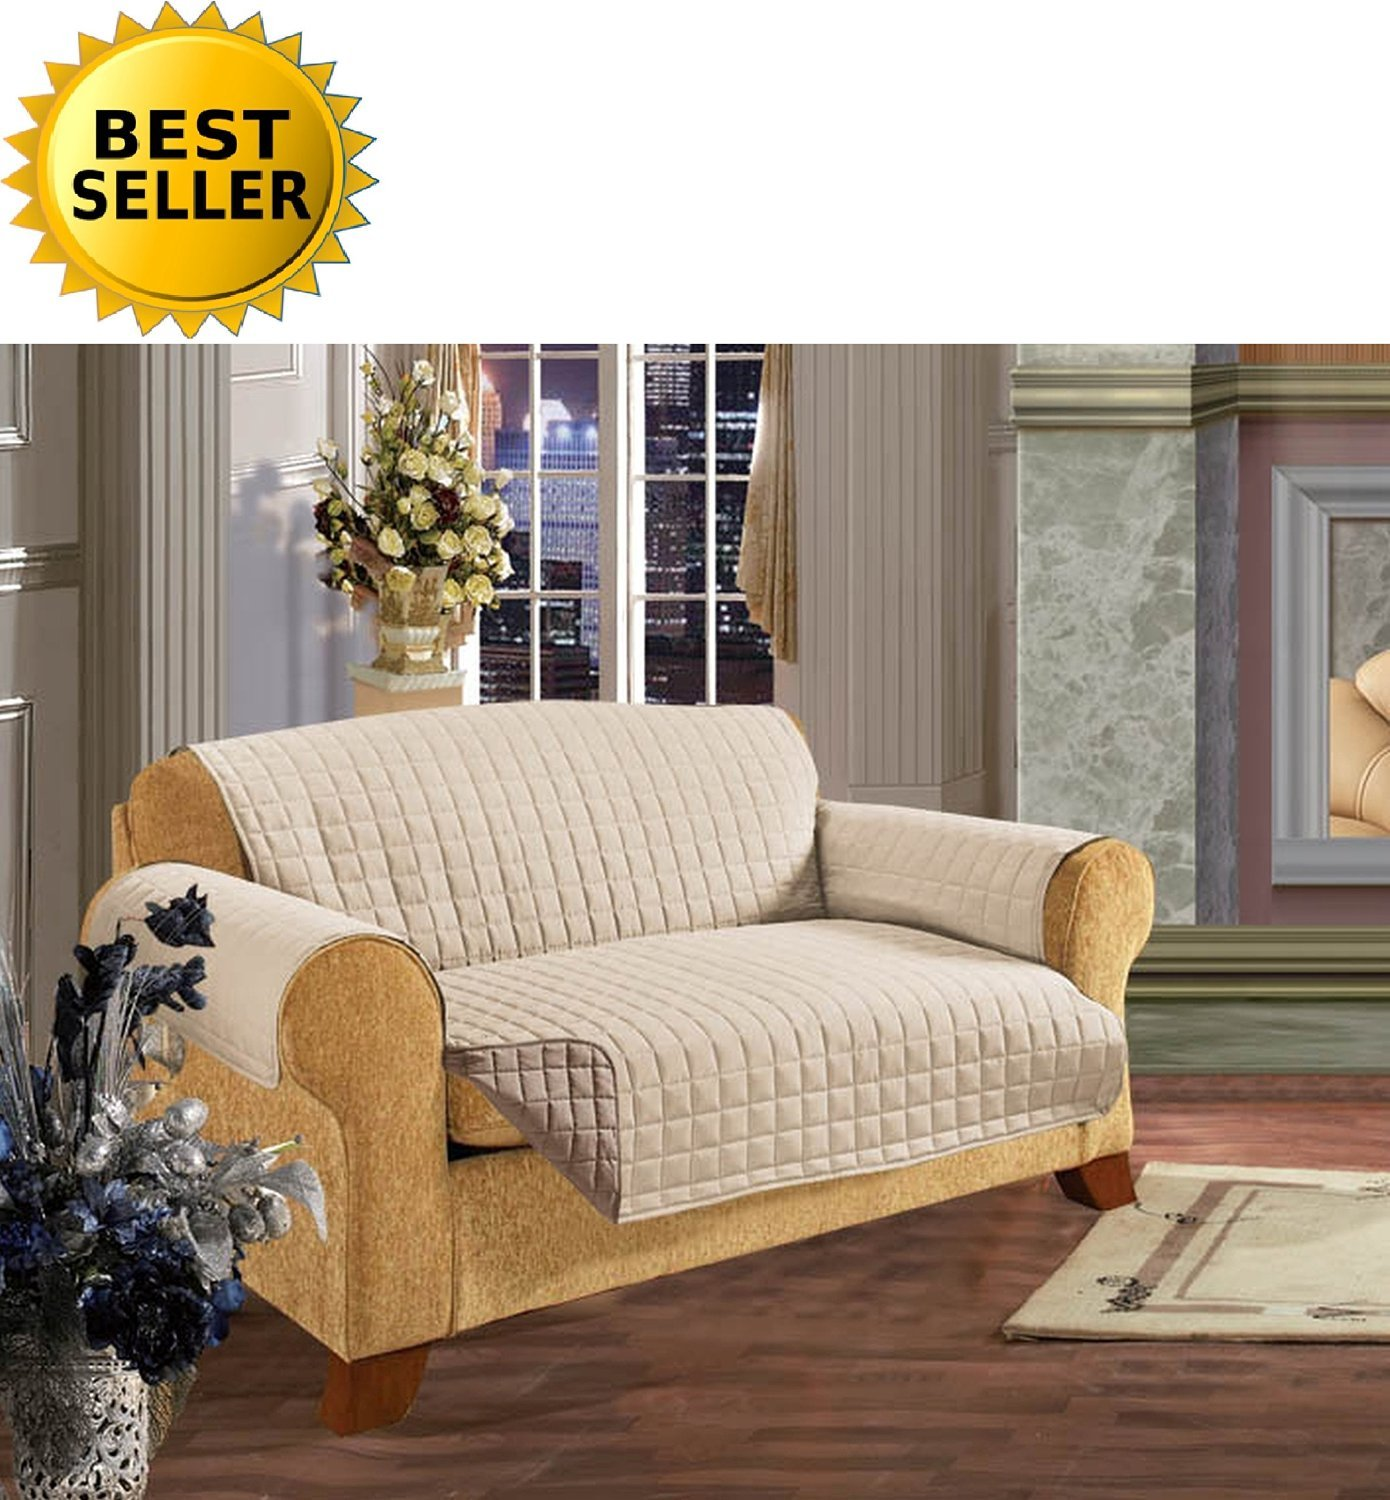 #1 Best Seller Reversible Furniture Protector! Elegance Linen® Luxury Slipcover/Furniture Protector Great for Pets & Children with STRAPS TO PREVENT SLIPPING OFF, Sofa Size, Cream/Taupe by Elegance Linen